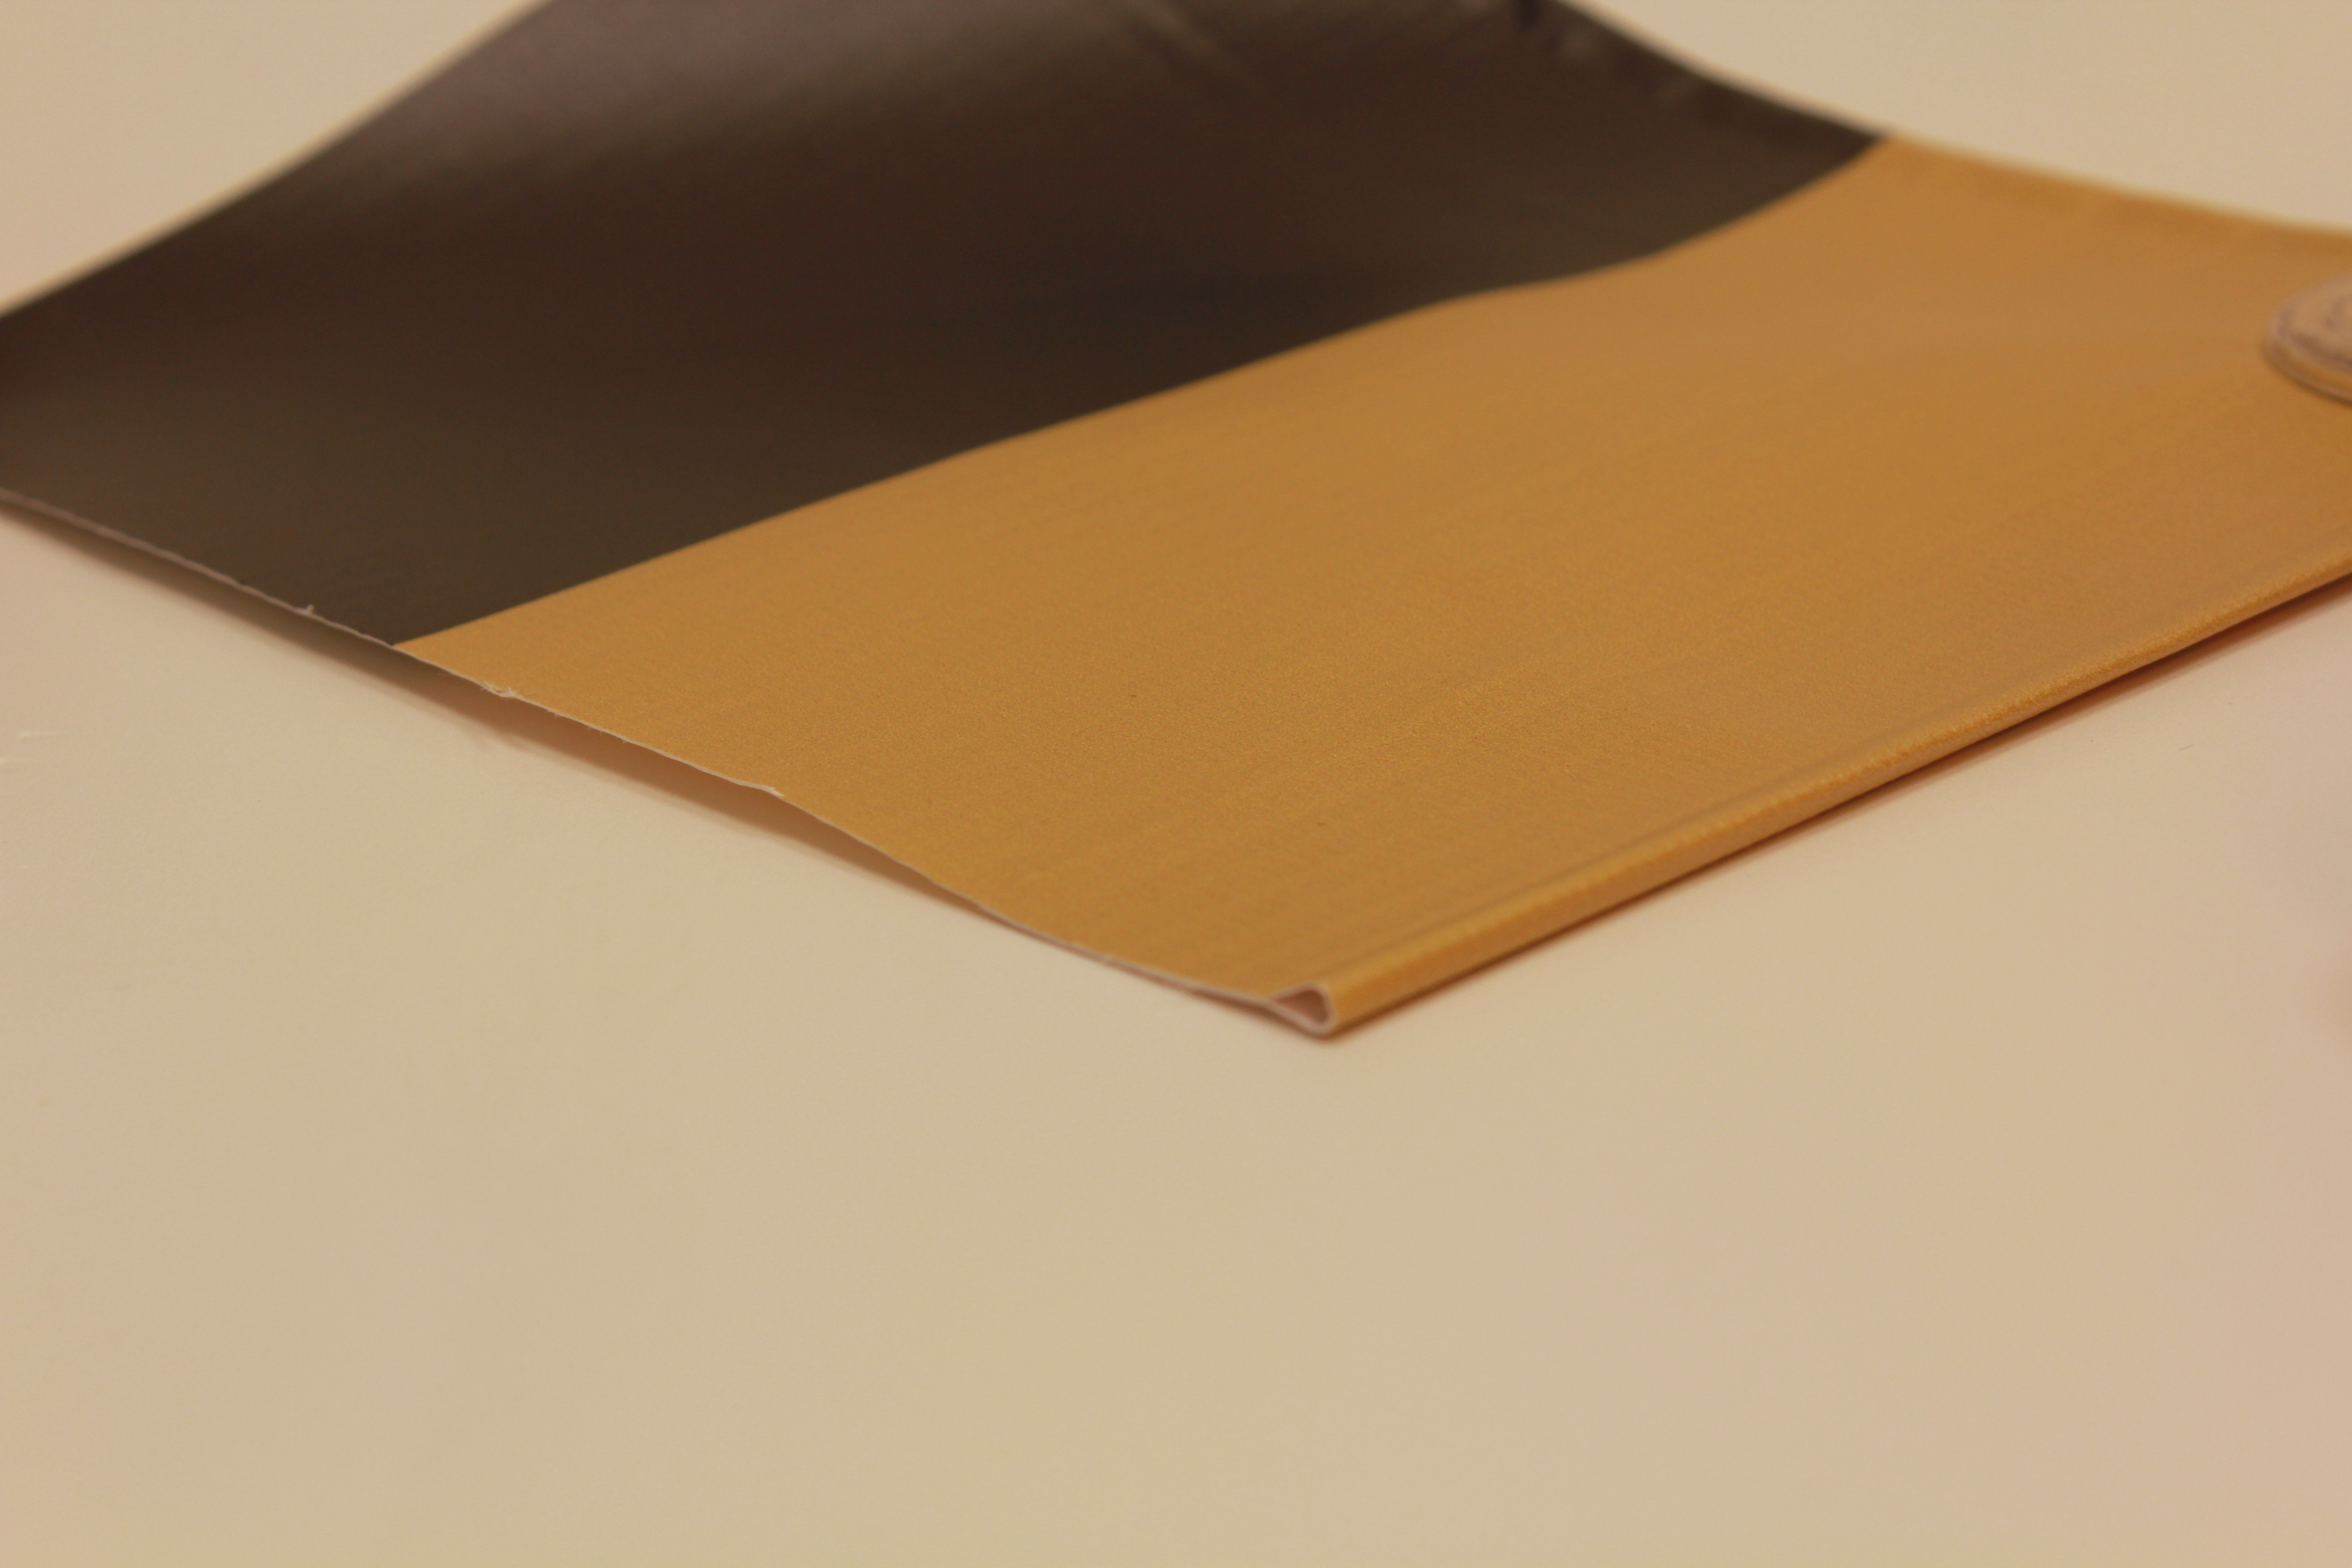 PVC-Banner hem-only-no-eyelets Printing UK, Next Day Delivery - www.ontimeprint.co.uk